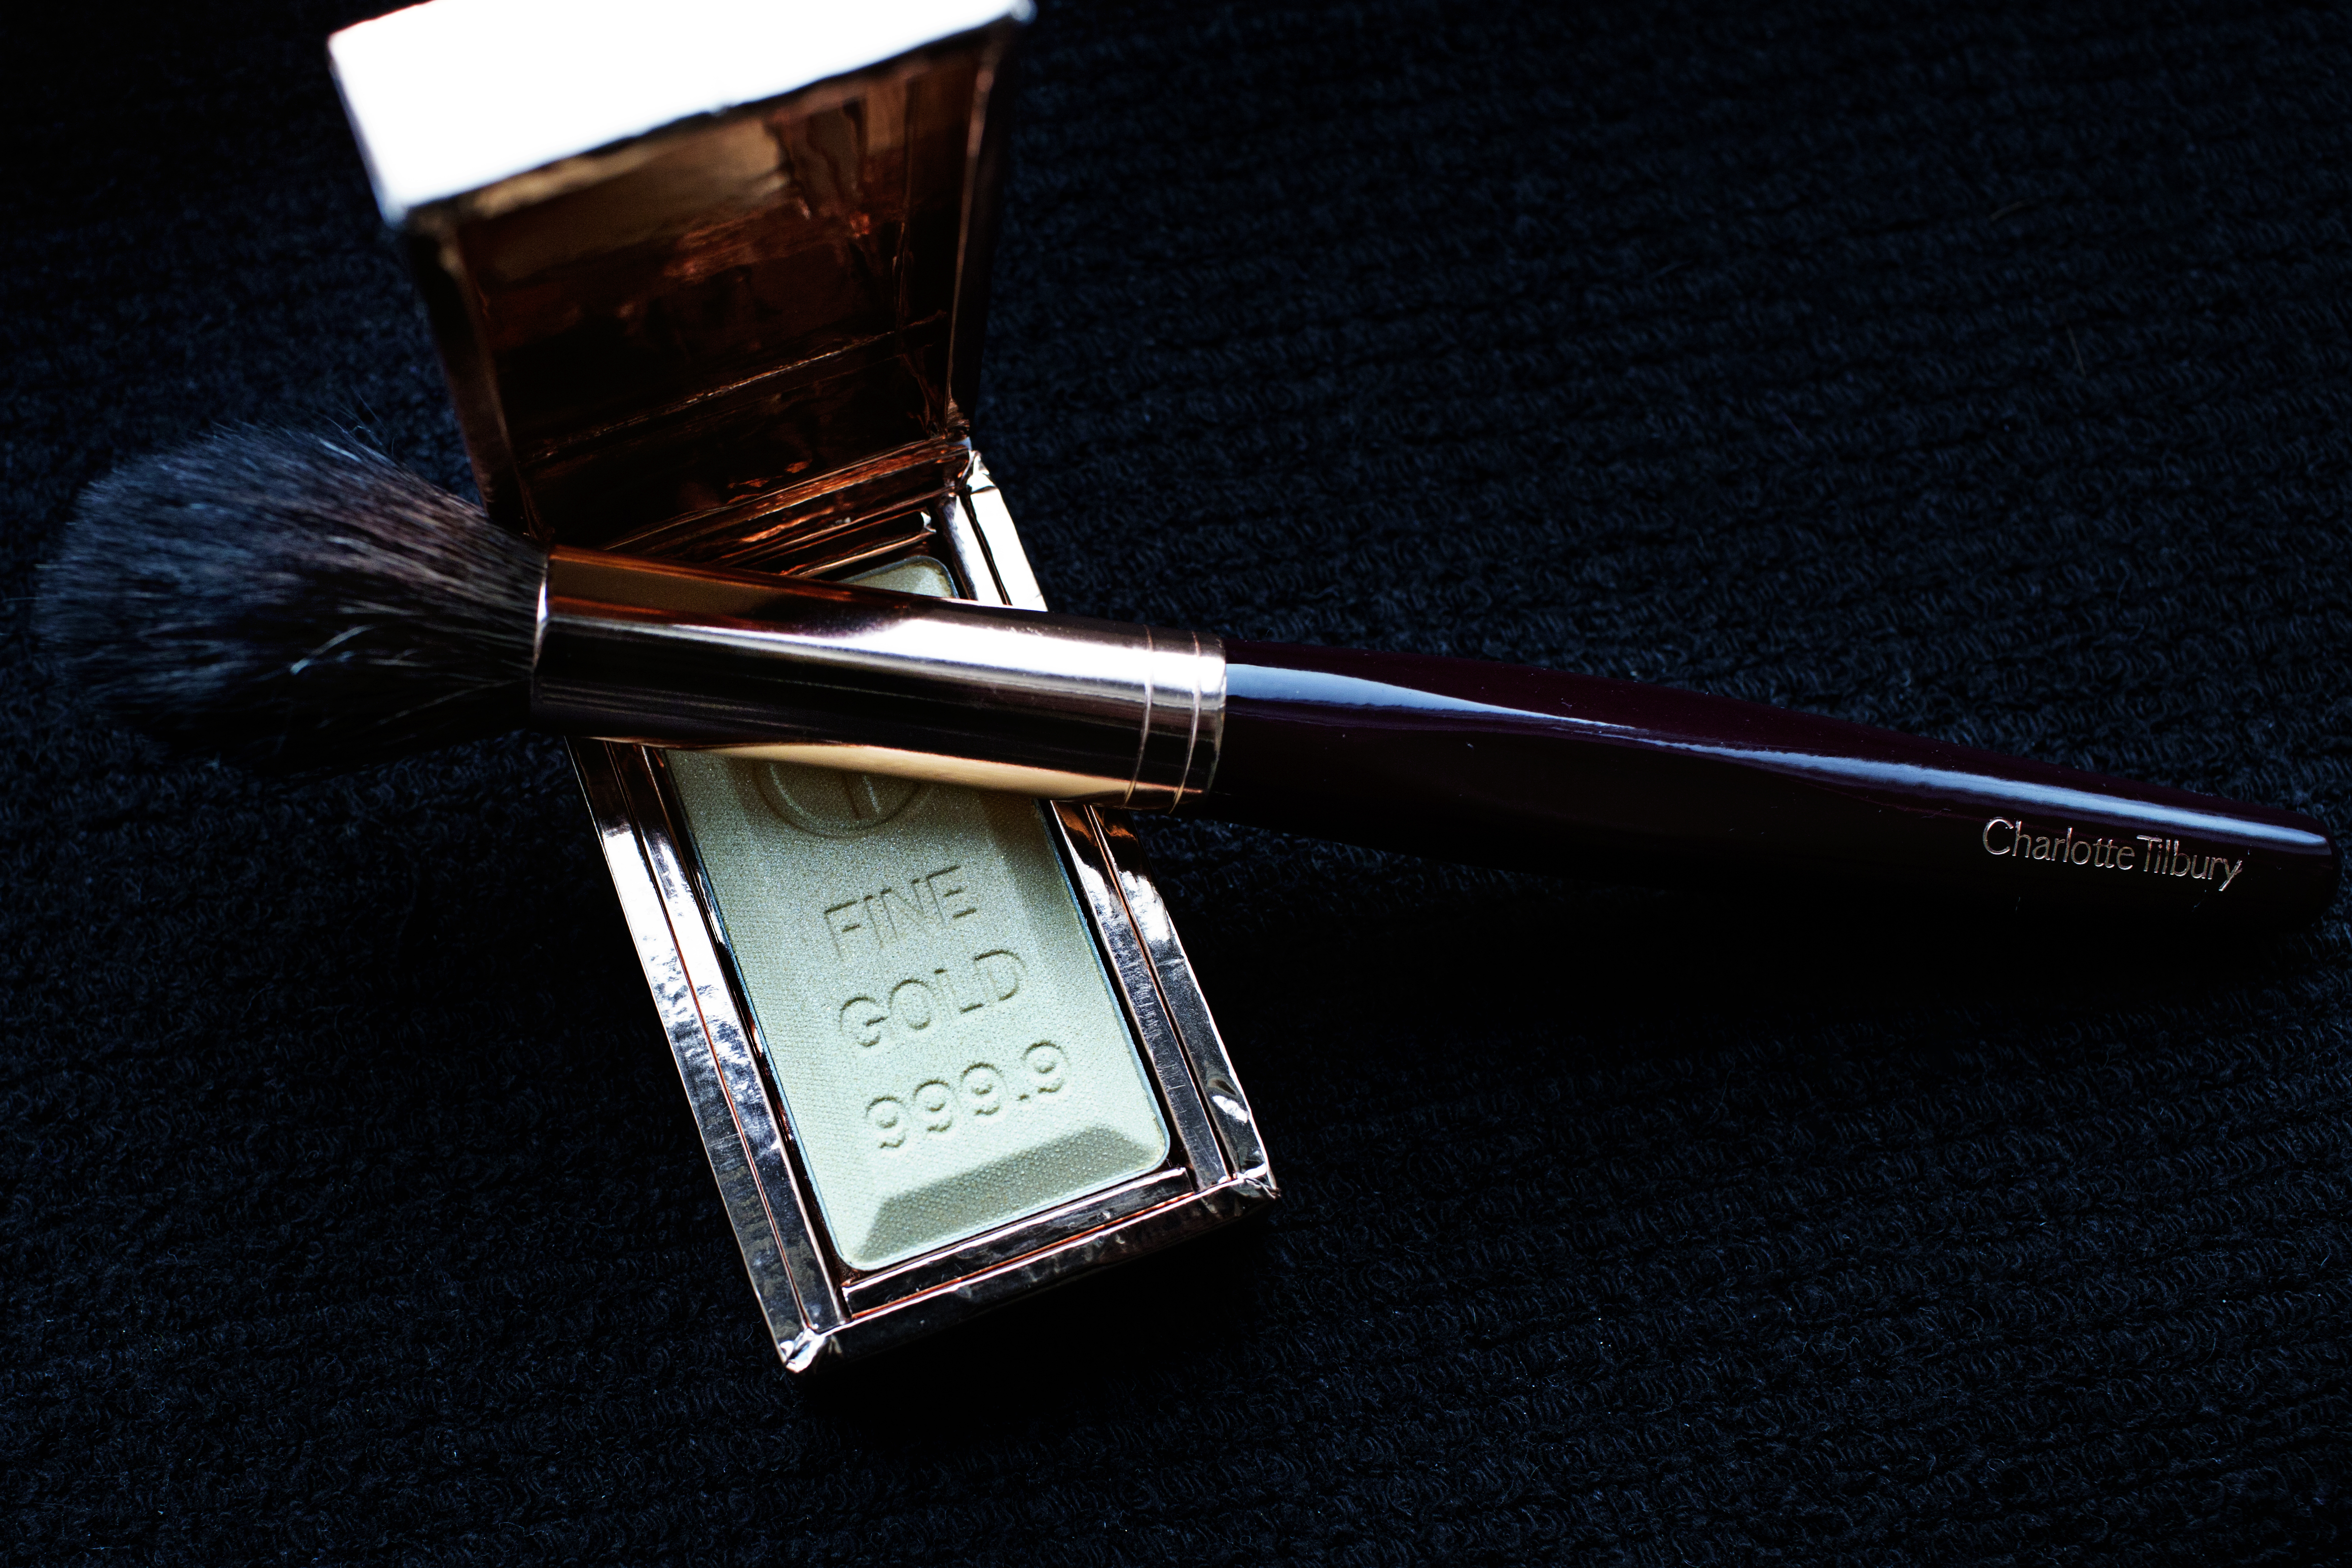 charlotte tilbury  u2013 bar of gold  u2013 skin gilding highlighter